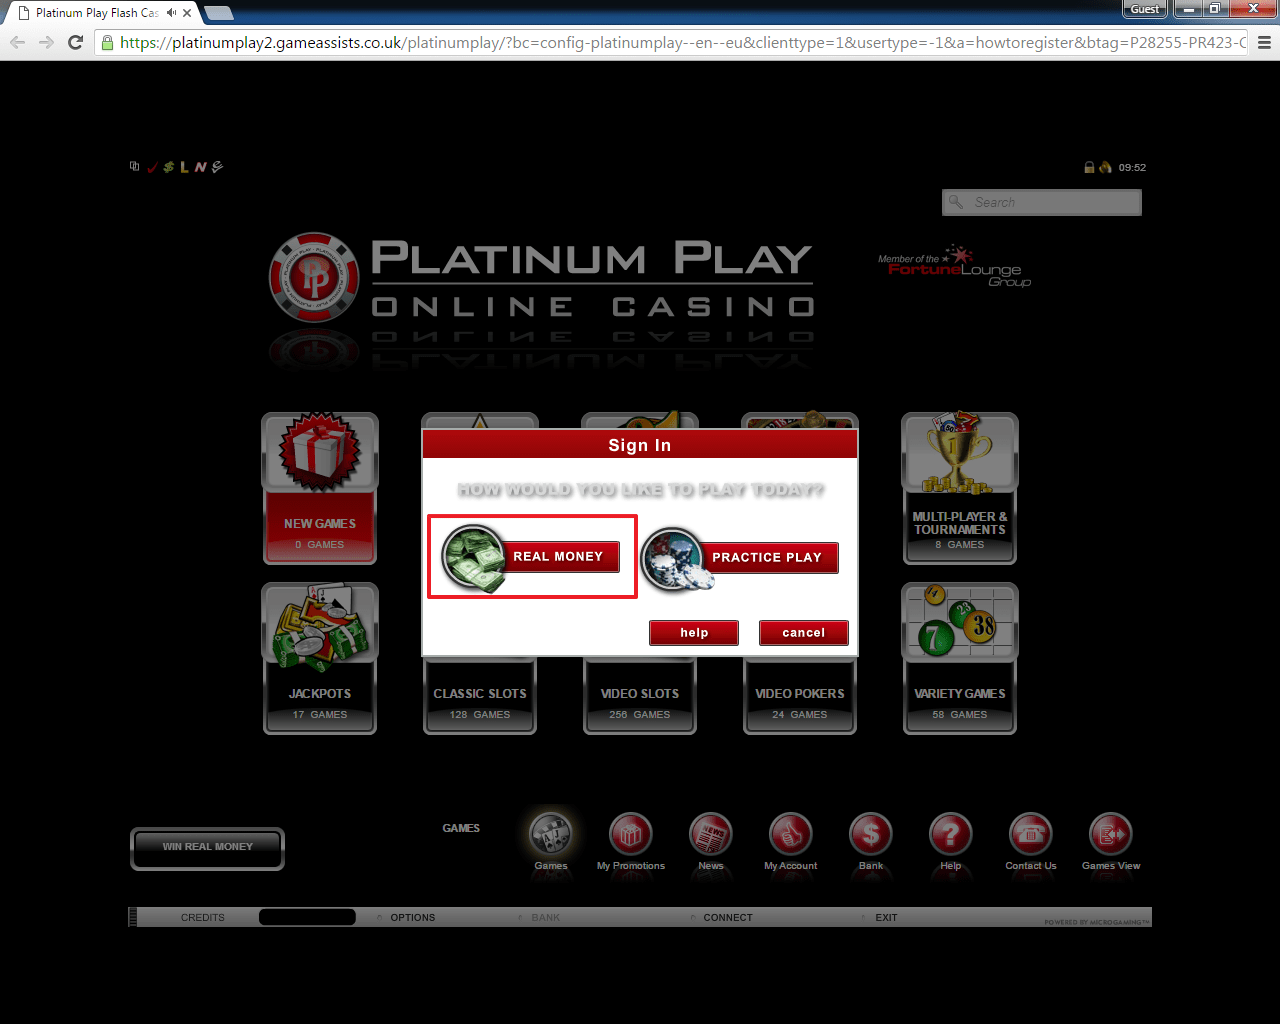 Platinum Play mobile casino games